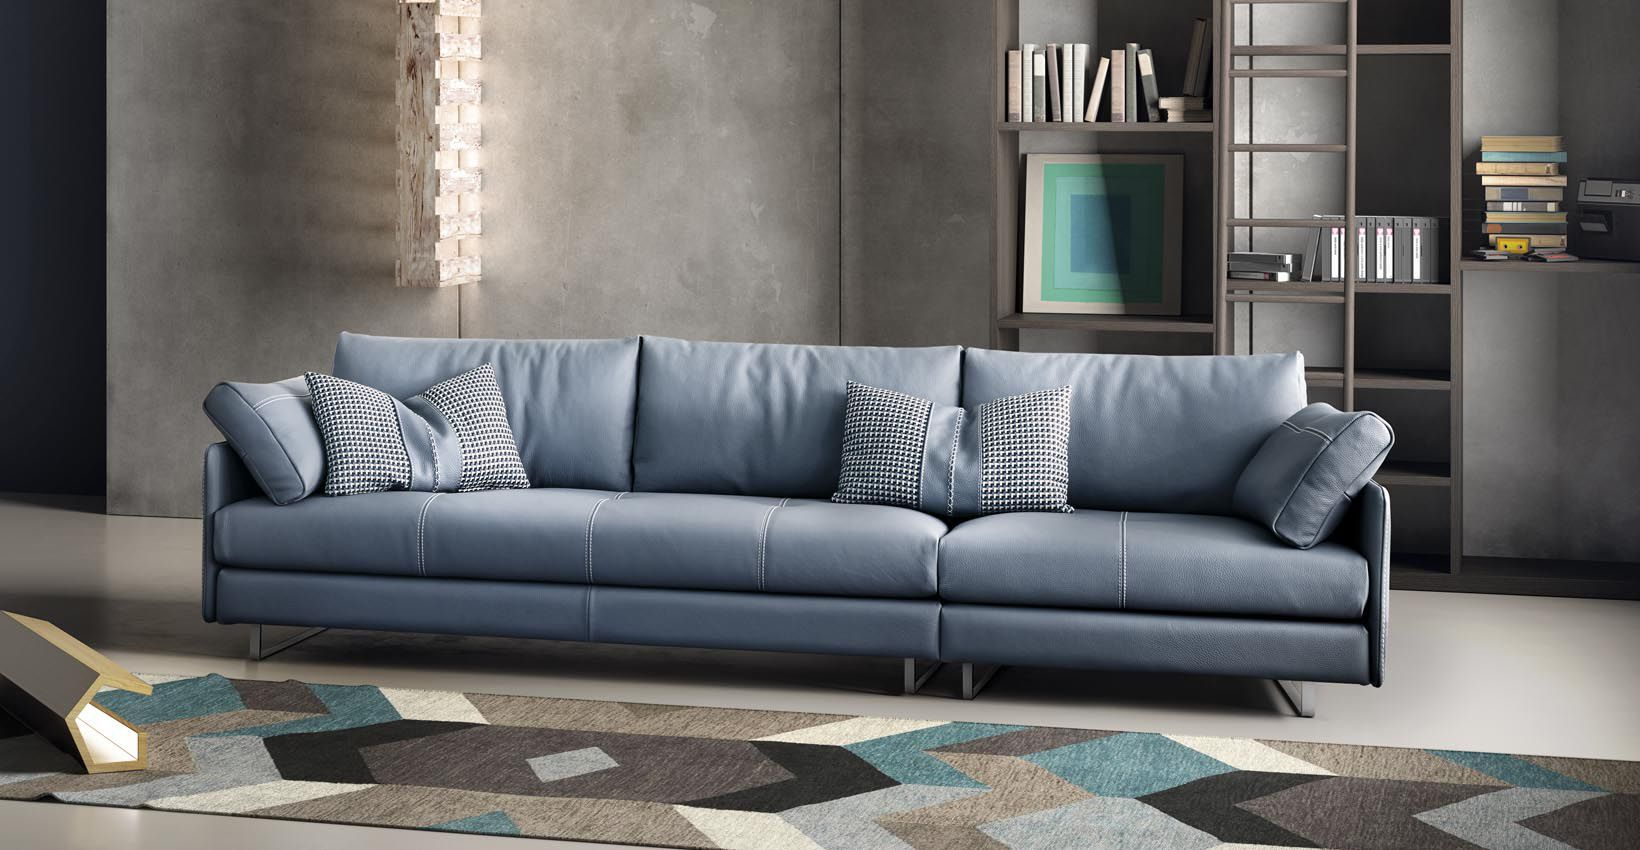 Modular Sofa / Contemporary / Leather / 3 Seater   SWING